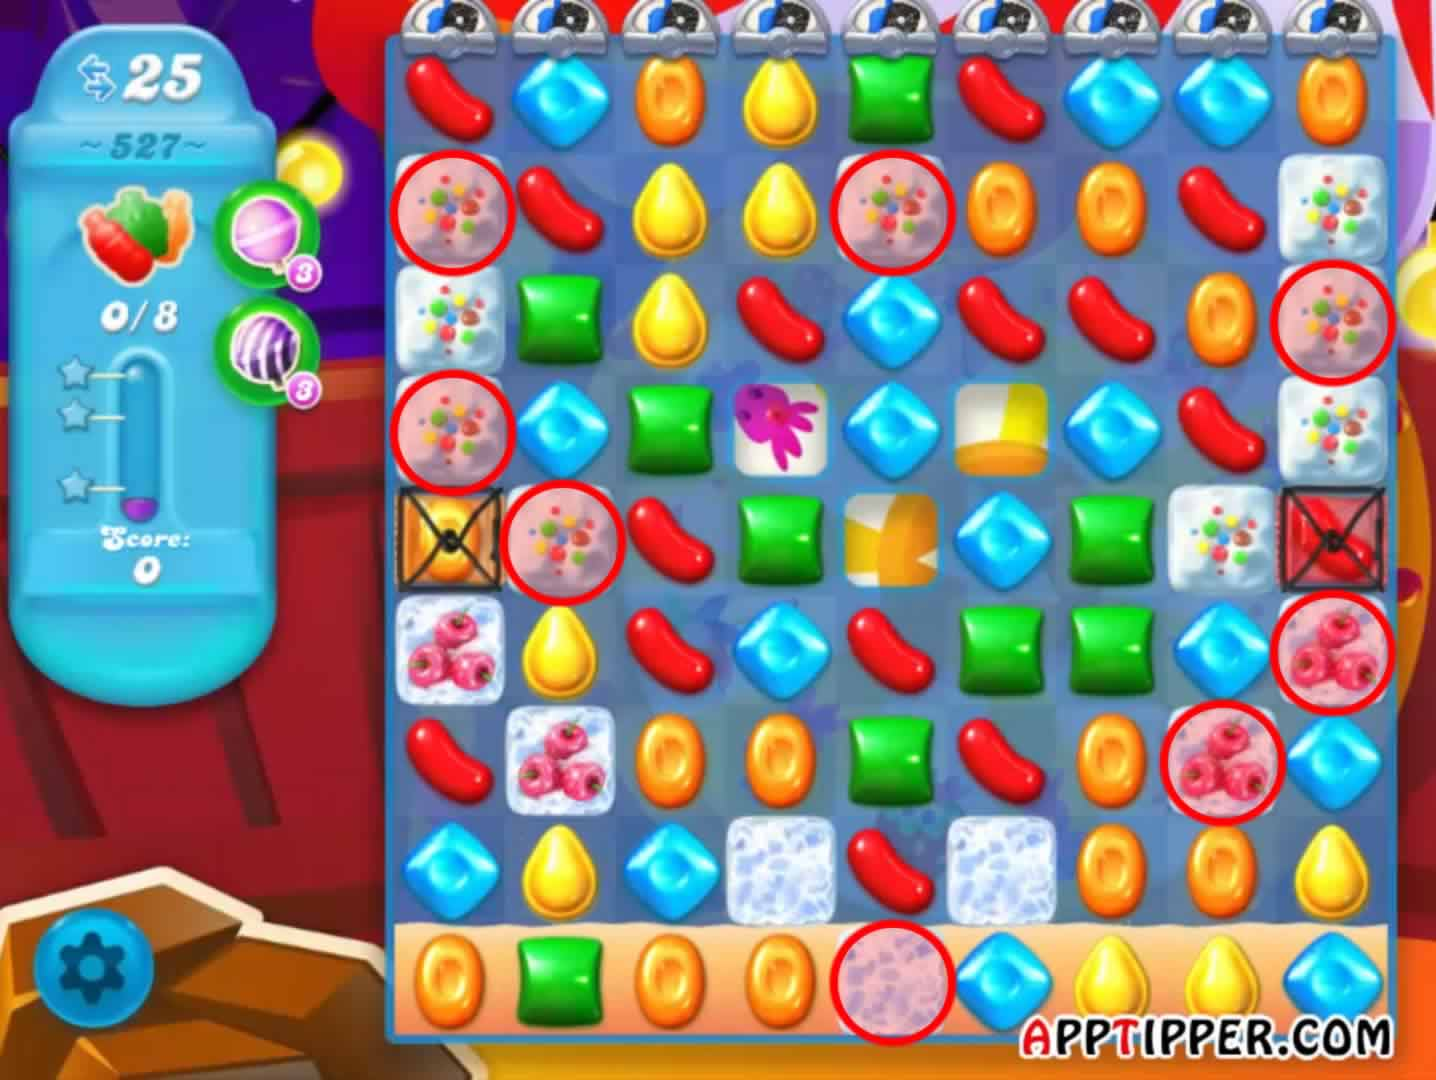 candy crush soda Check out these candy crush soda saga booster tips by daniel 16 december 2016 getting stuck on a hard level can have you pulling out your hair and howling at the moon in frustration.